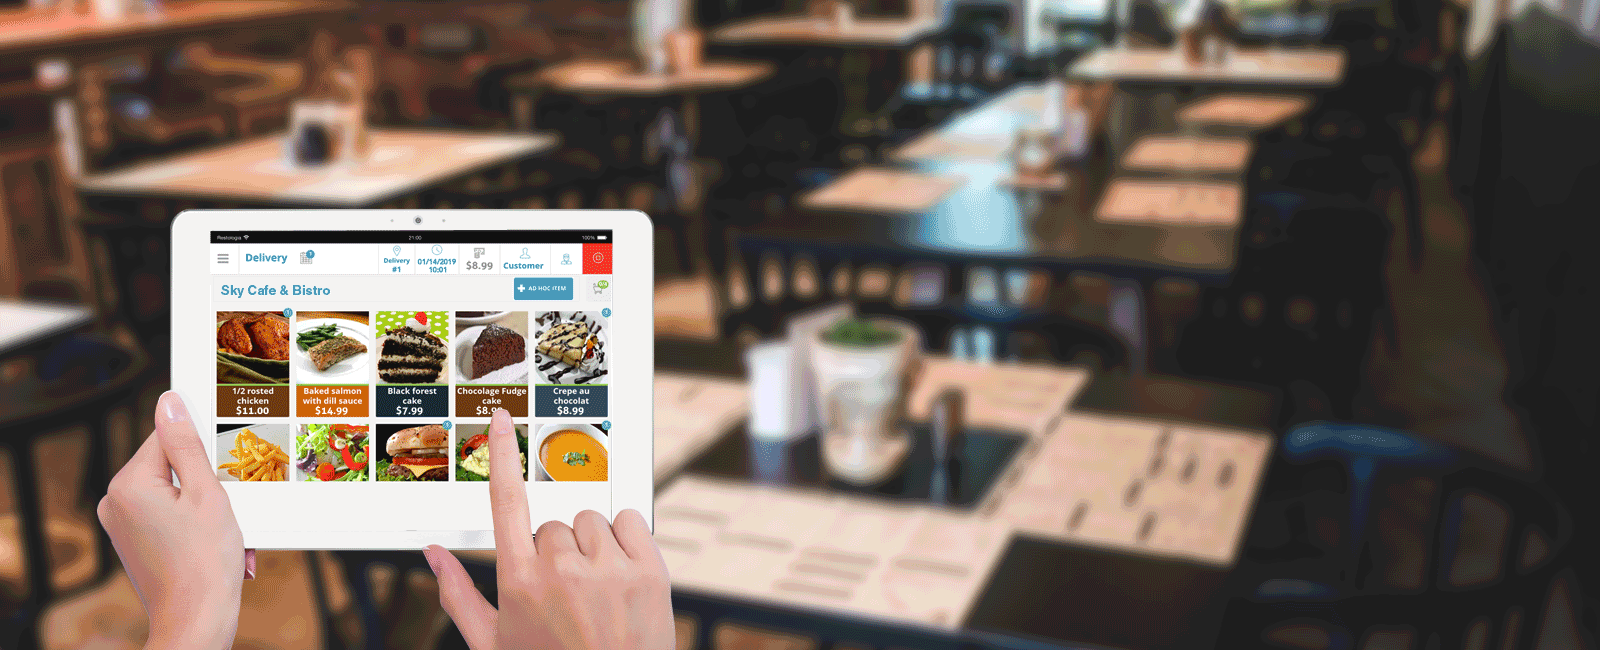 Restaurant Tablet E-Menu Guys